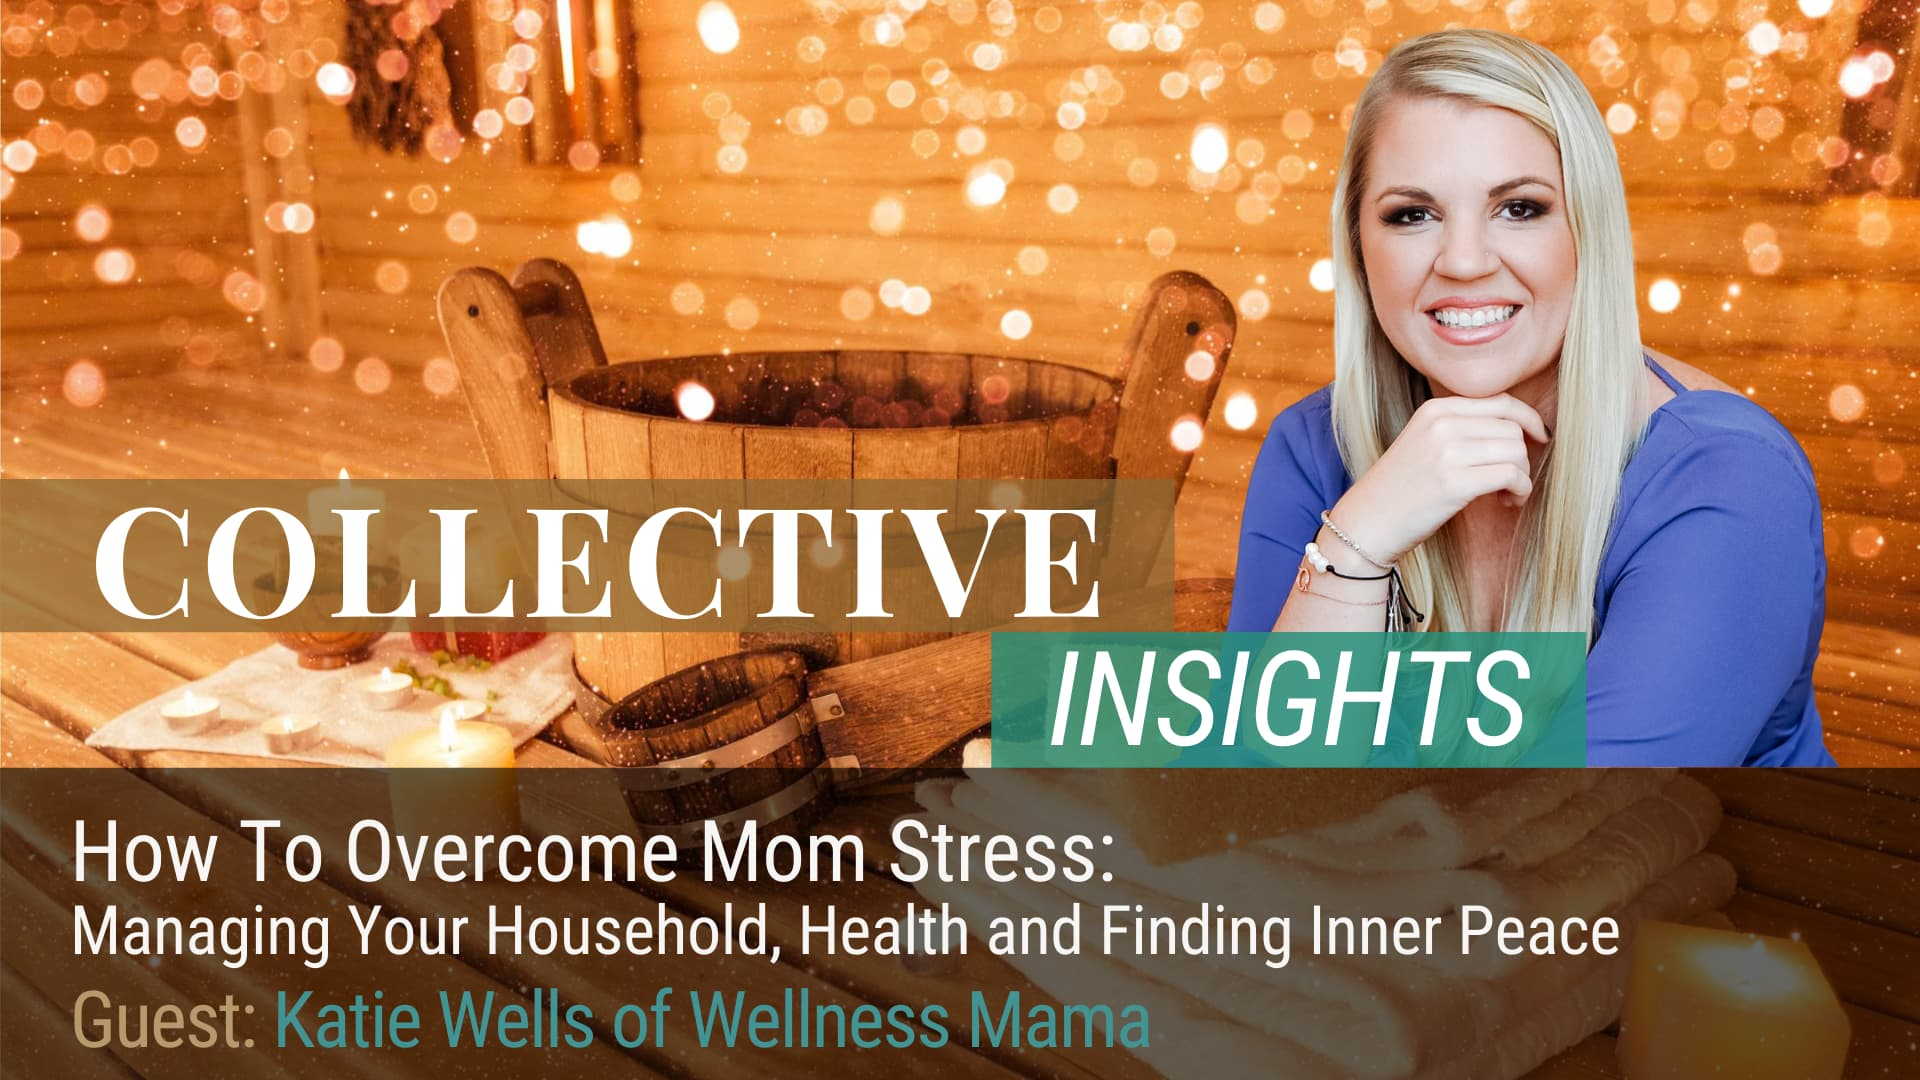 How To Overcome Mom Stress: Managing Your Household, Health and Finding Inner Peace